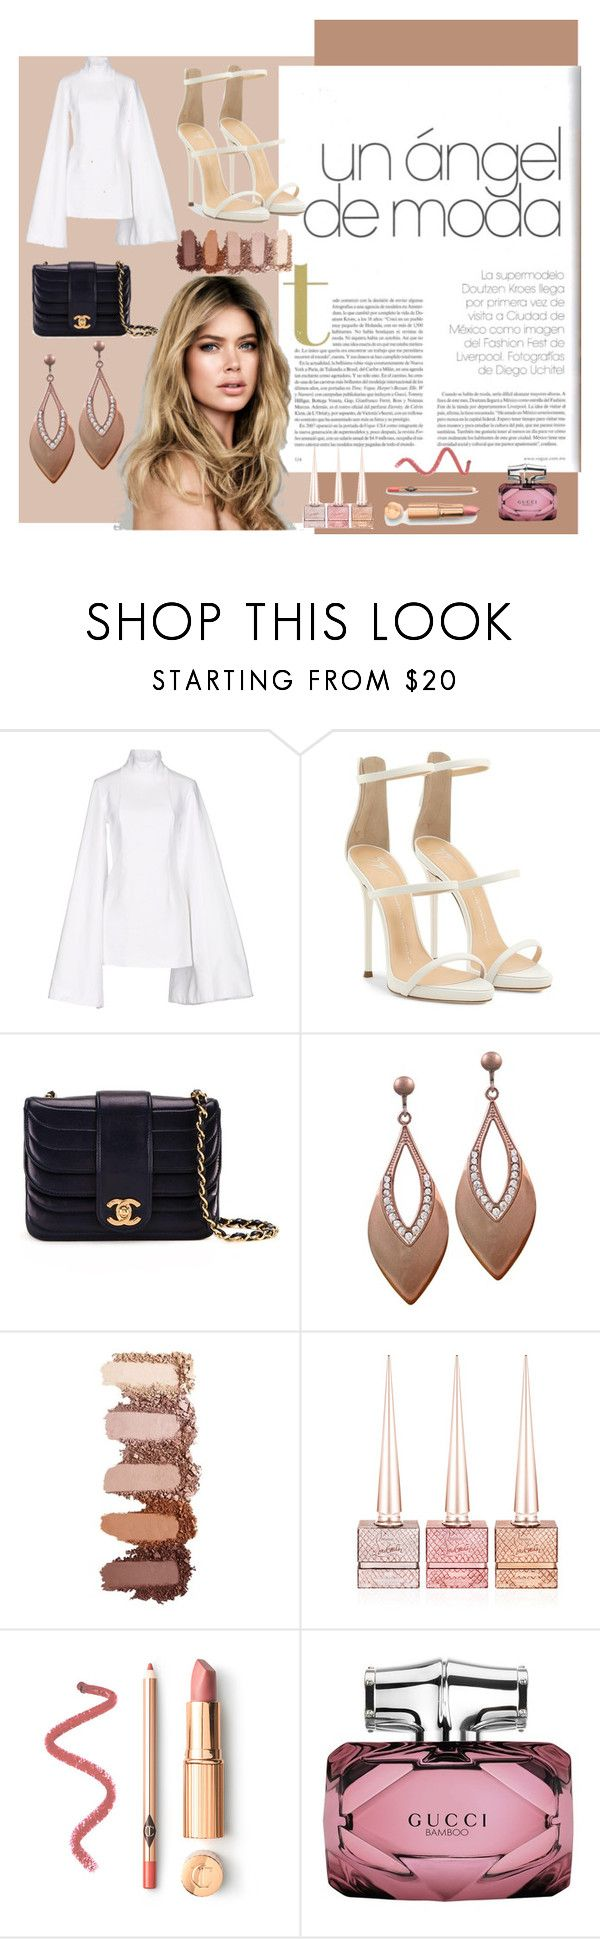 """""""new york"""" by patybernal on Polyvore featuring moda, Jacquemus, Giuseppe Zanotti, Chanel, Christian Louboutin, Gucci, chic, angel, mexico y women"""